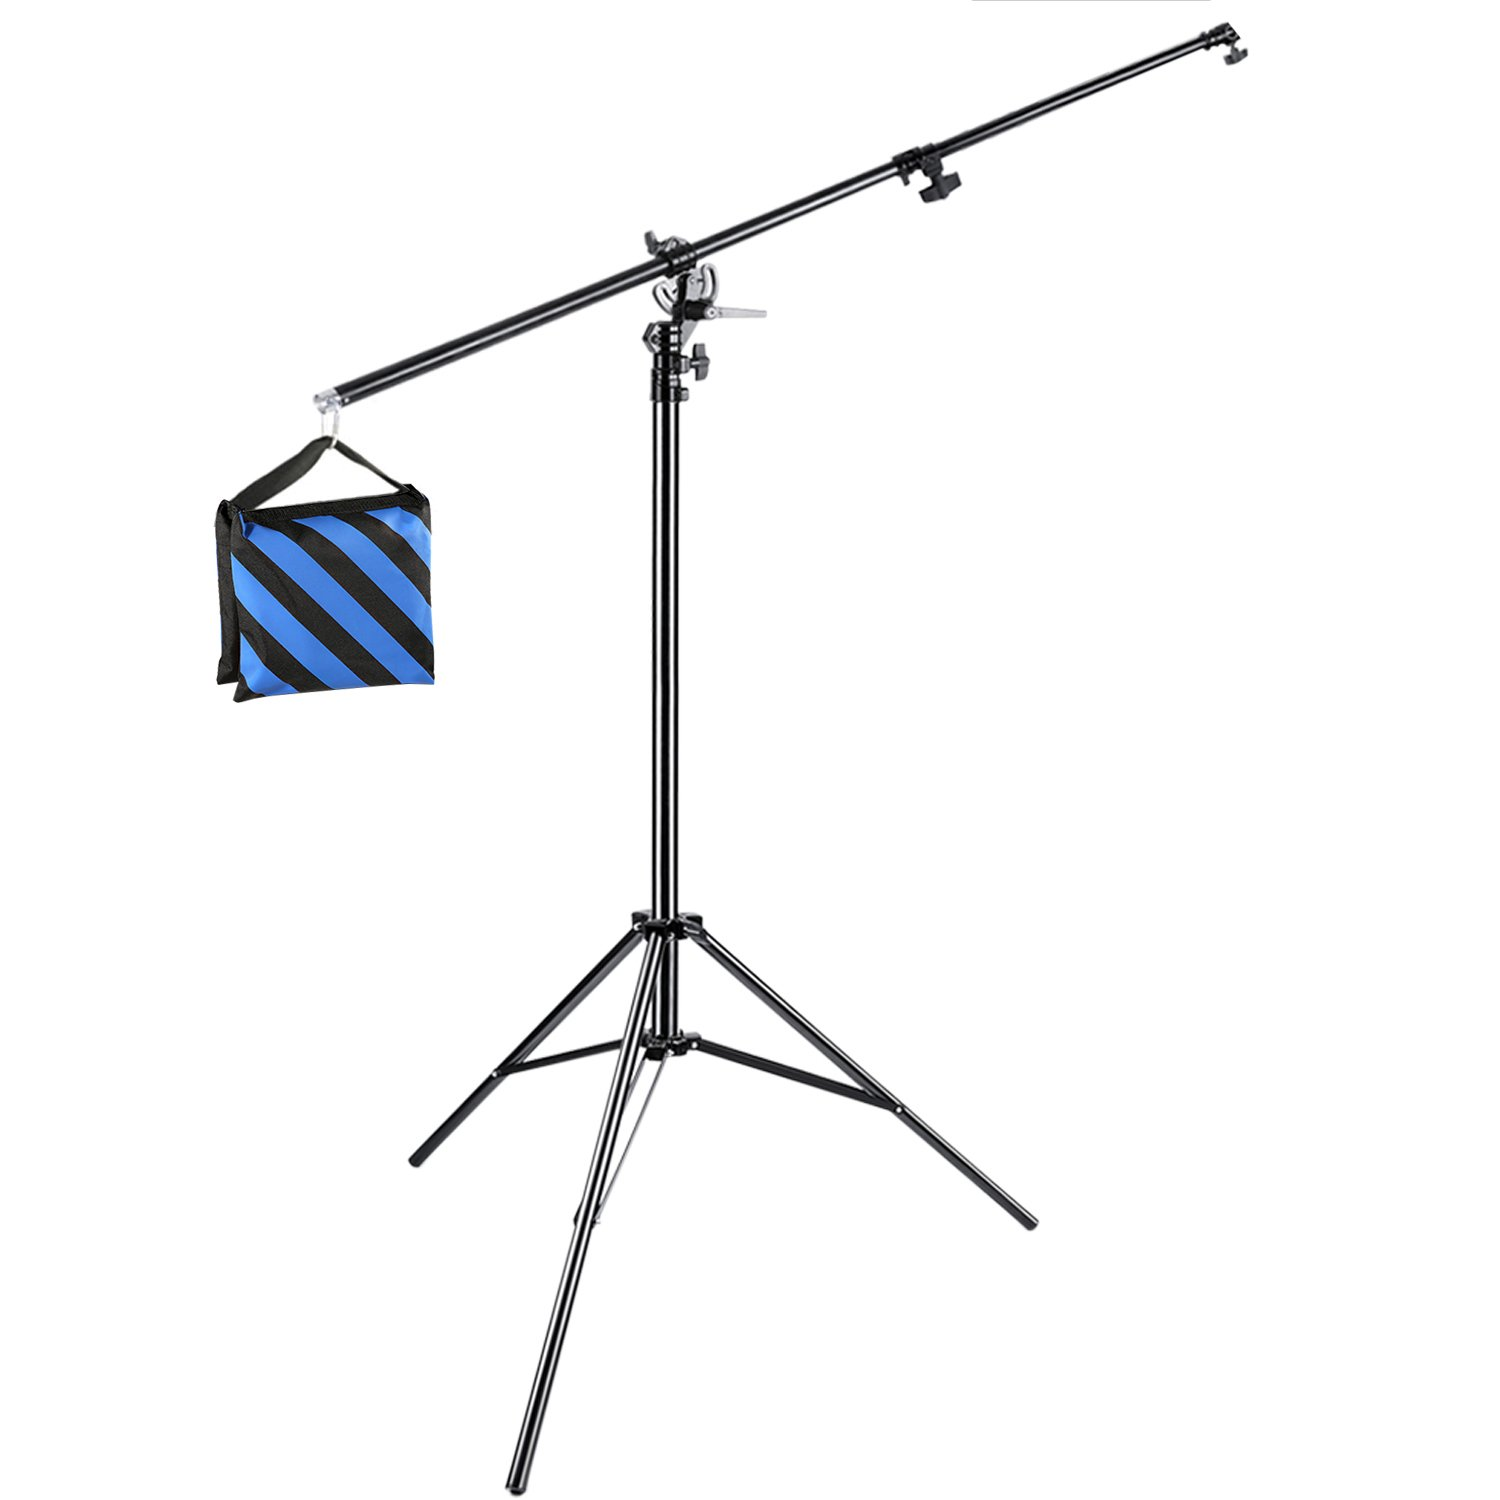 Neewer Photo Studio 13 feet/3.9 Meters 2-in-1 Light Stand with 74.8-inch Boom Arm and Blue Sandbag for Supporting Softbox Studio Flash for Video Portrait Photography, Aluminum Alloy (Empty Sandbag) by Neewer